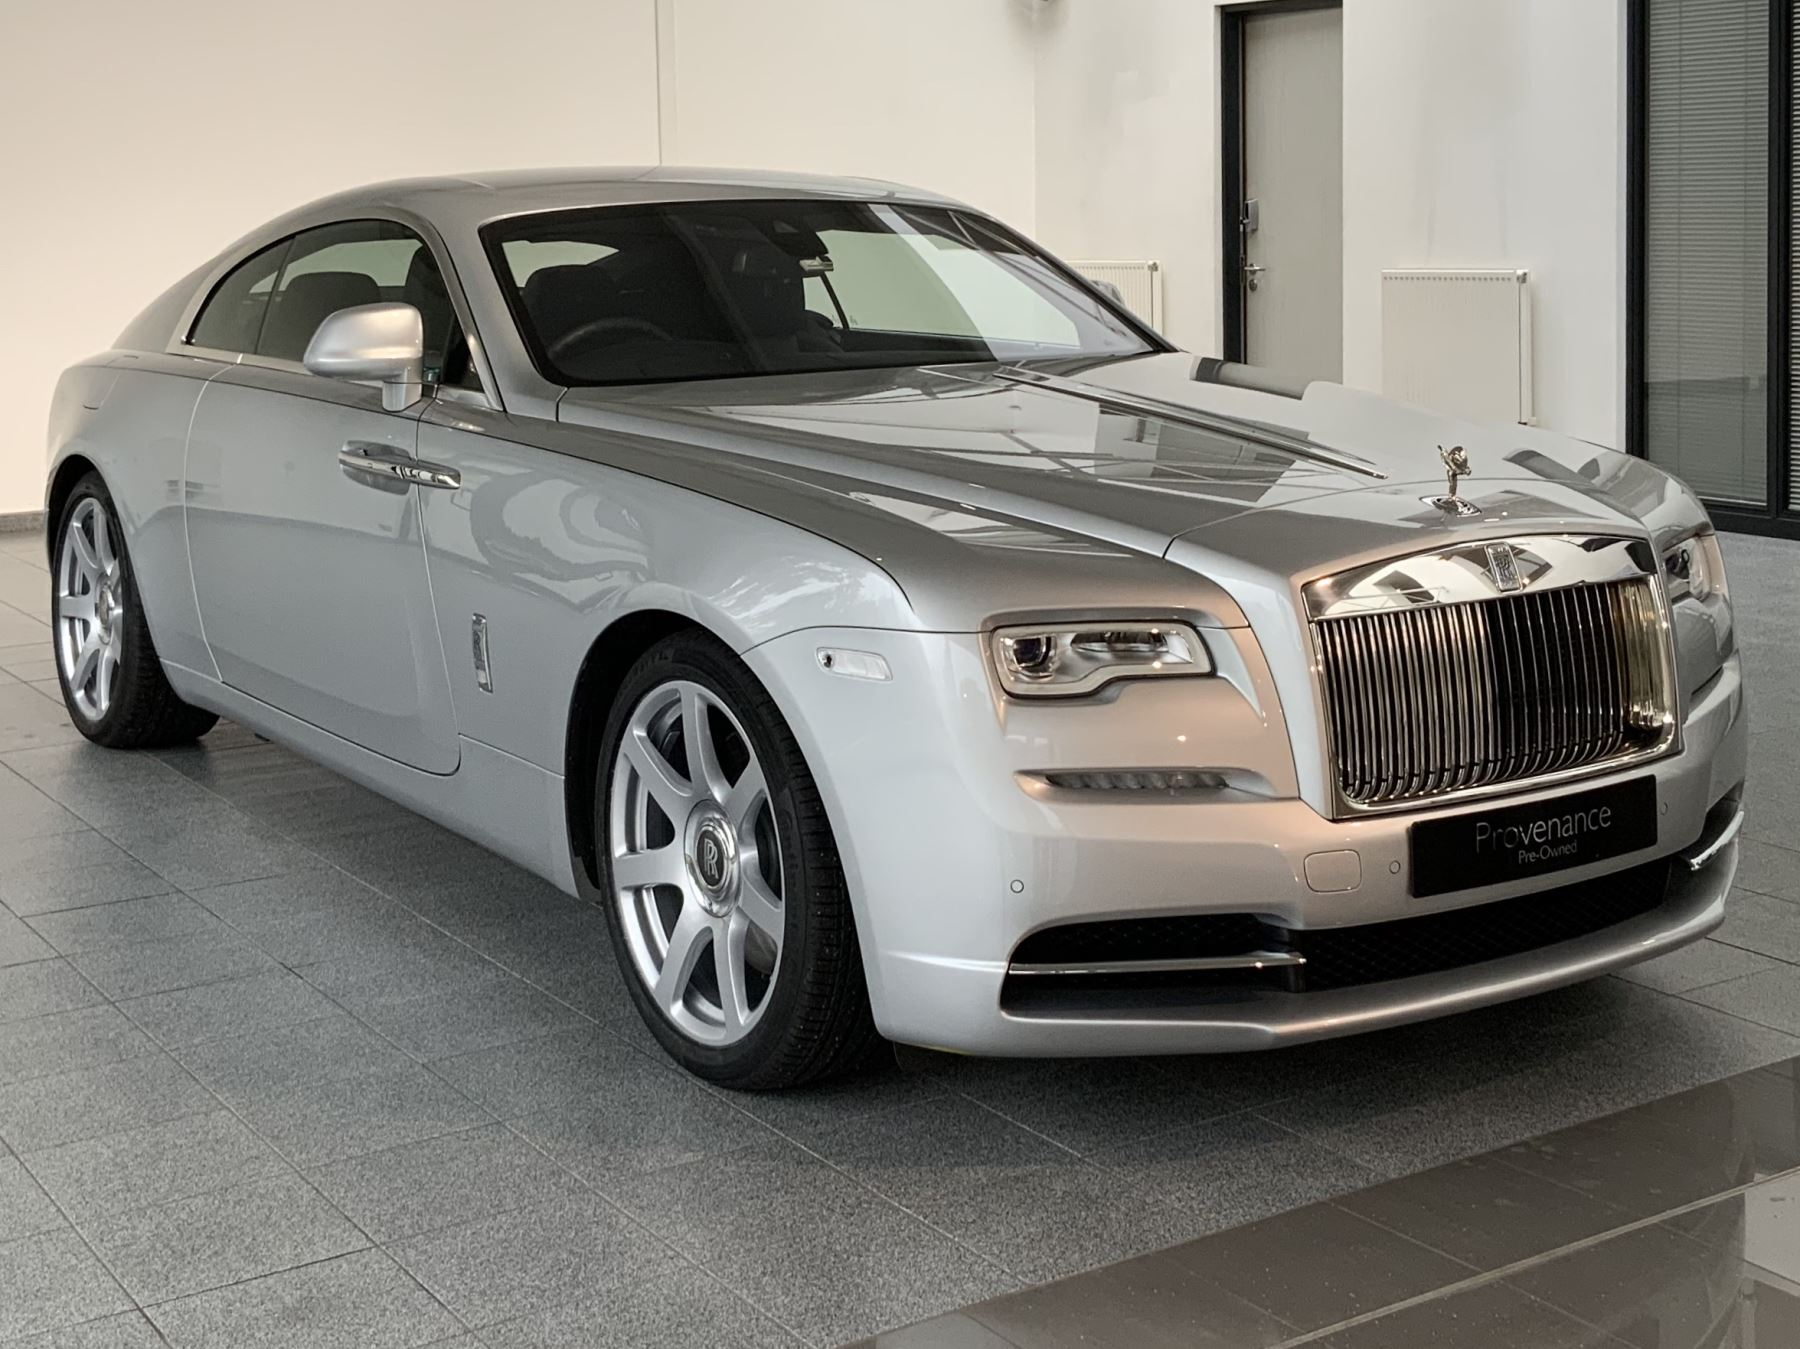 Rolls-Royce Wraith V12 6.6 Automatic 2 door Coupe (2018)